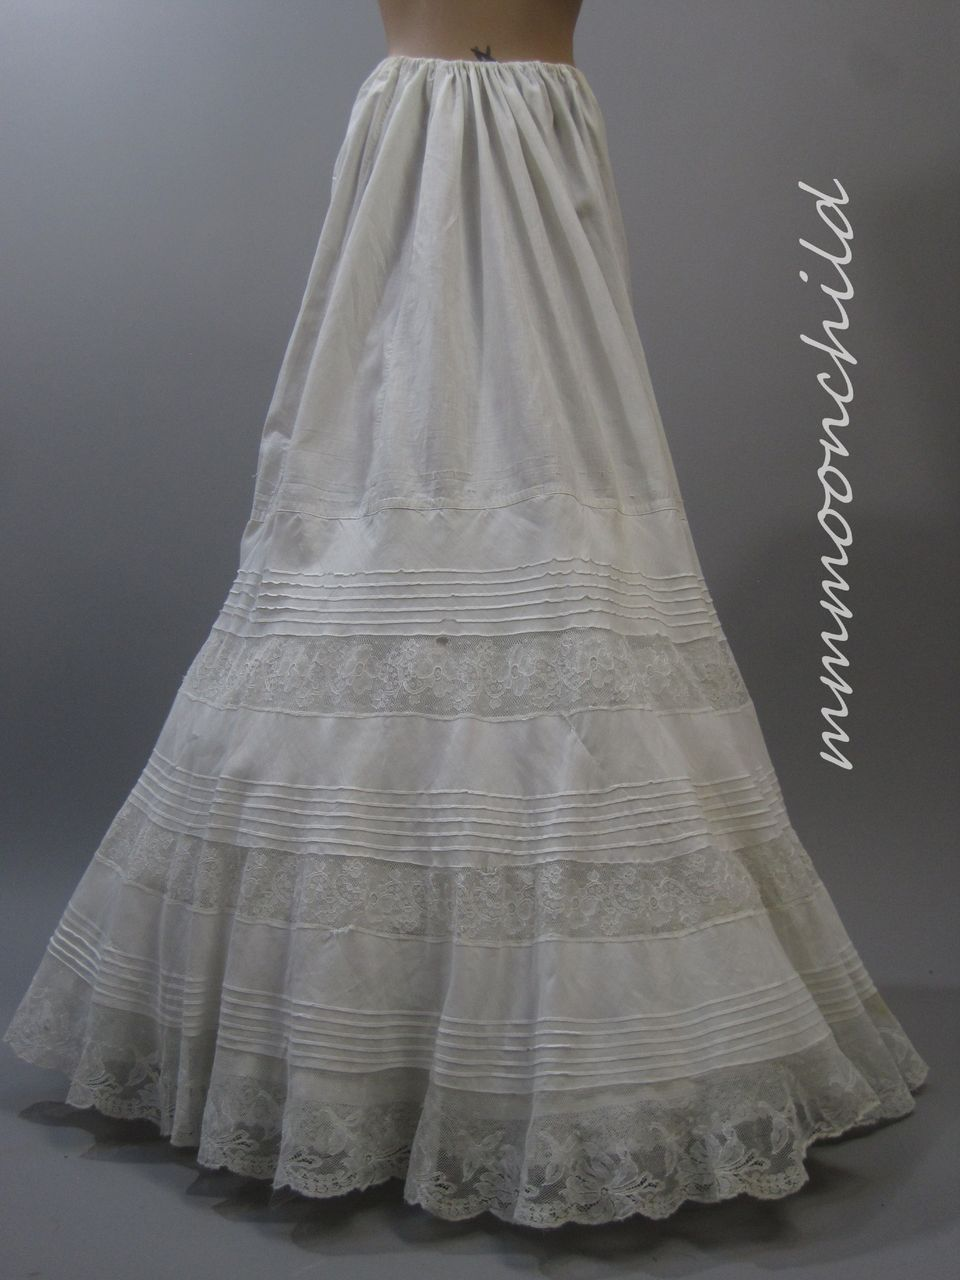 Antique Victorian Cotton and lace Petticoat HM11